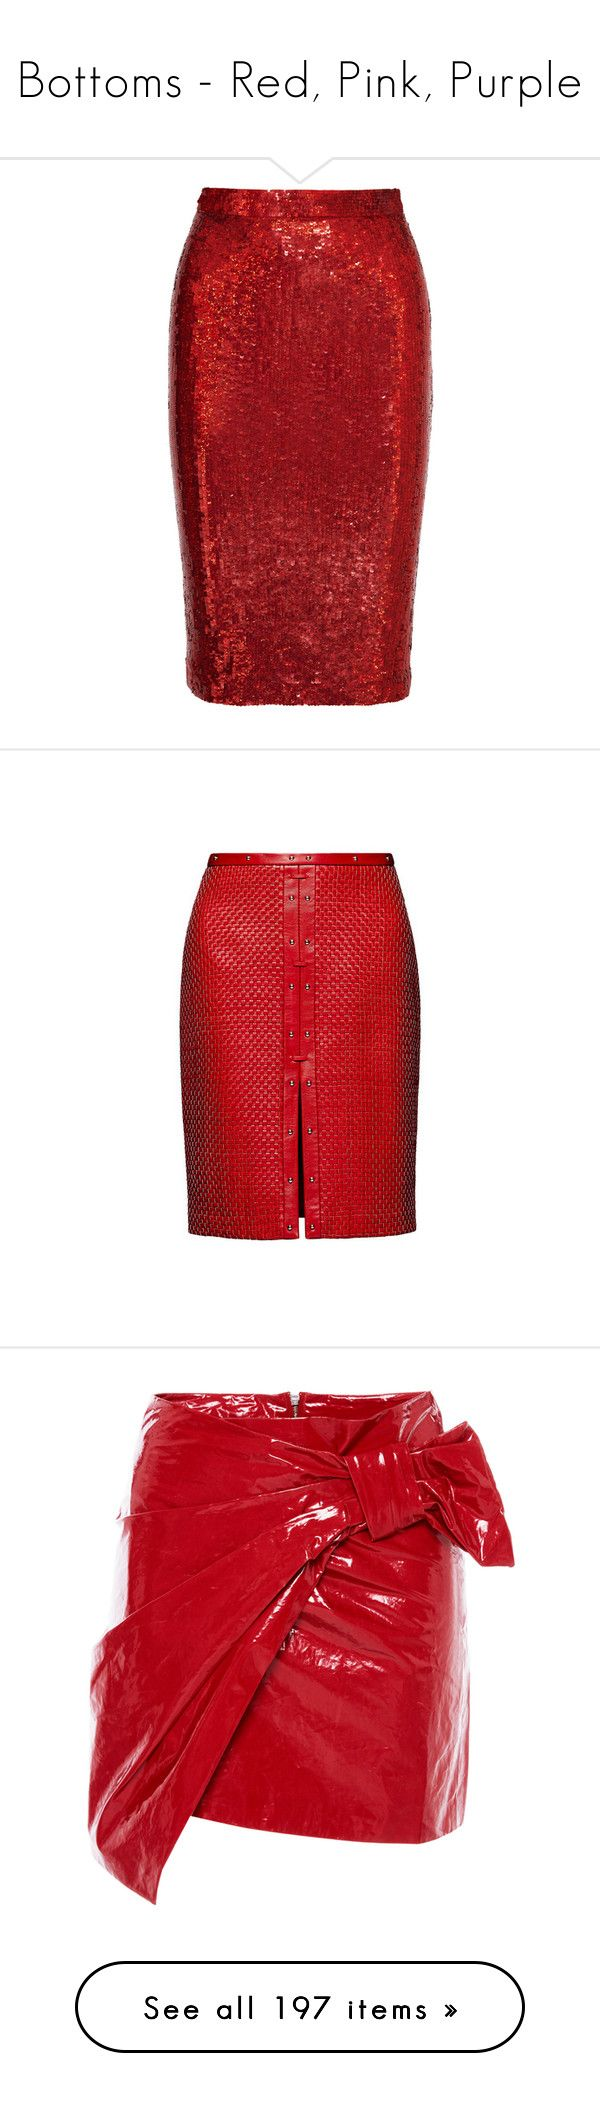 """""""Bottoms - Red, Pink, Purple"""" by lynesse ❤ liked on Polyvore featuring skirts, bottoms, pencil skirts, givenchy, red, silk skirt, pencil skirt, red pencil skirt, knee length pencil skirt and red knee length pencil skirt"""